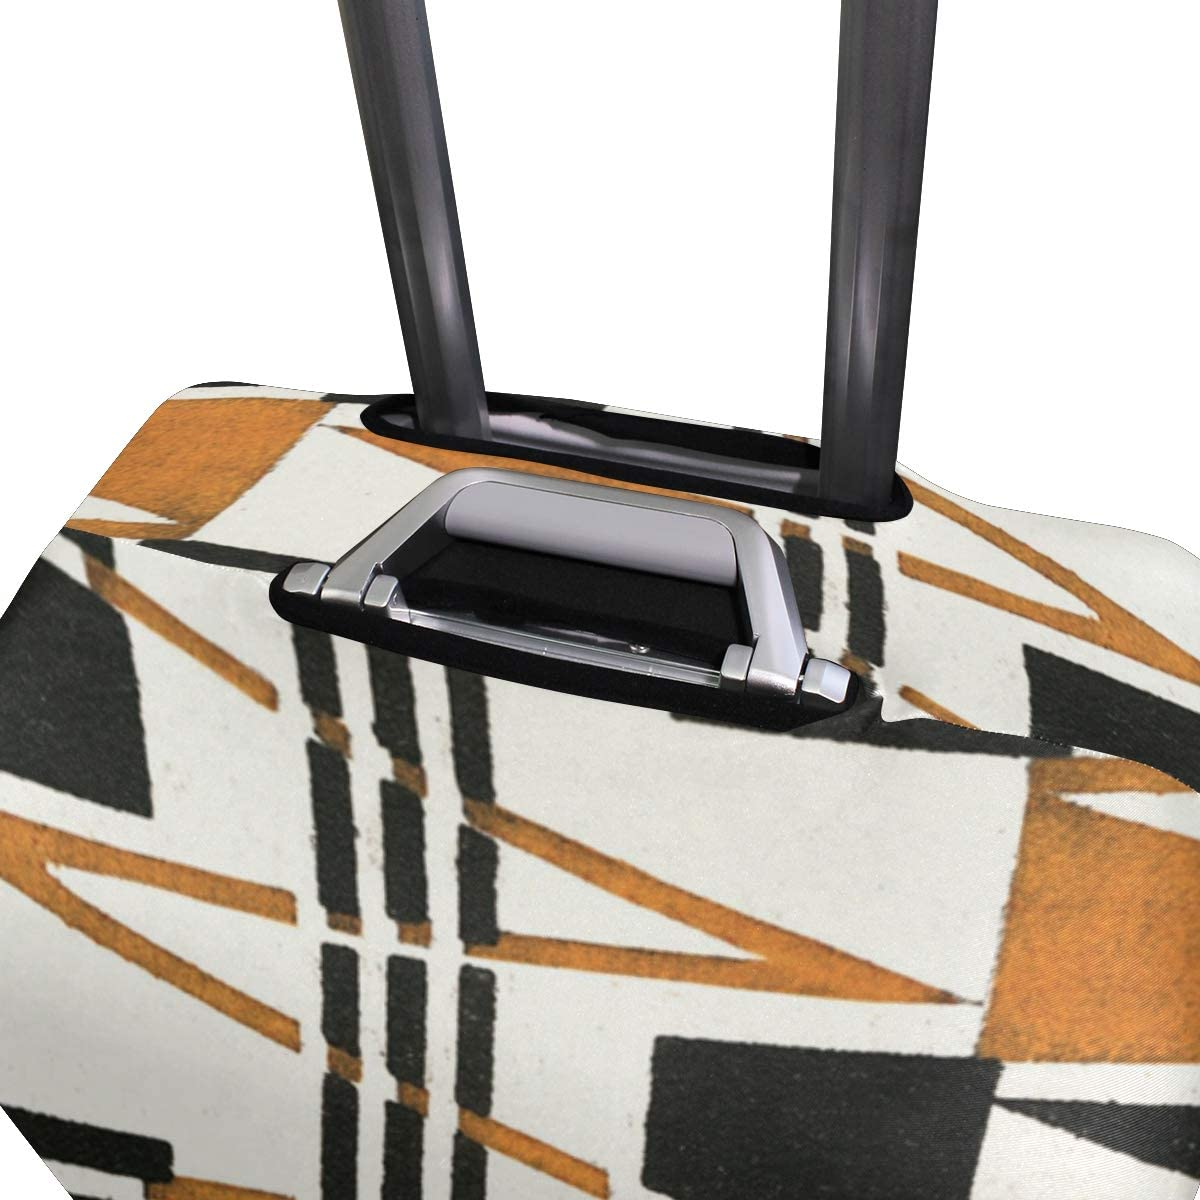 FOLPPLY The Geometric Print Luggage Cover Baggage Suitcase Travel Protector Fit for 18-32 Inch